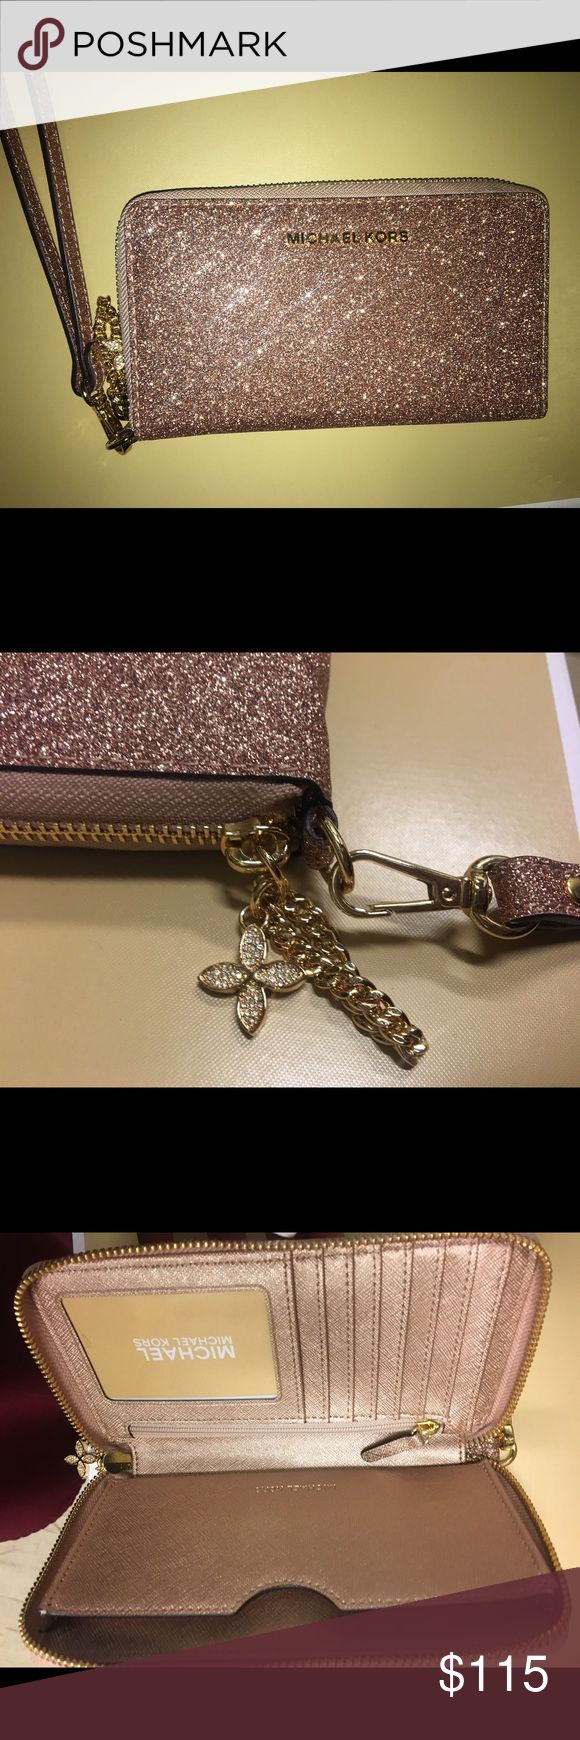 New MK wallet , not even out yet. Rose glittery gold, the gold charm adds cost to it KORS Michael Kors Bags Clutches & Wristlets